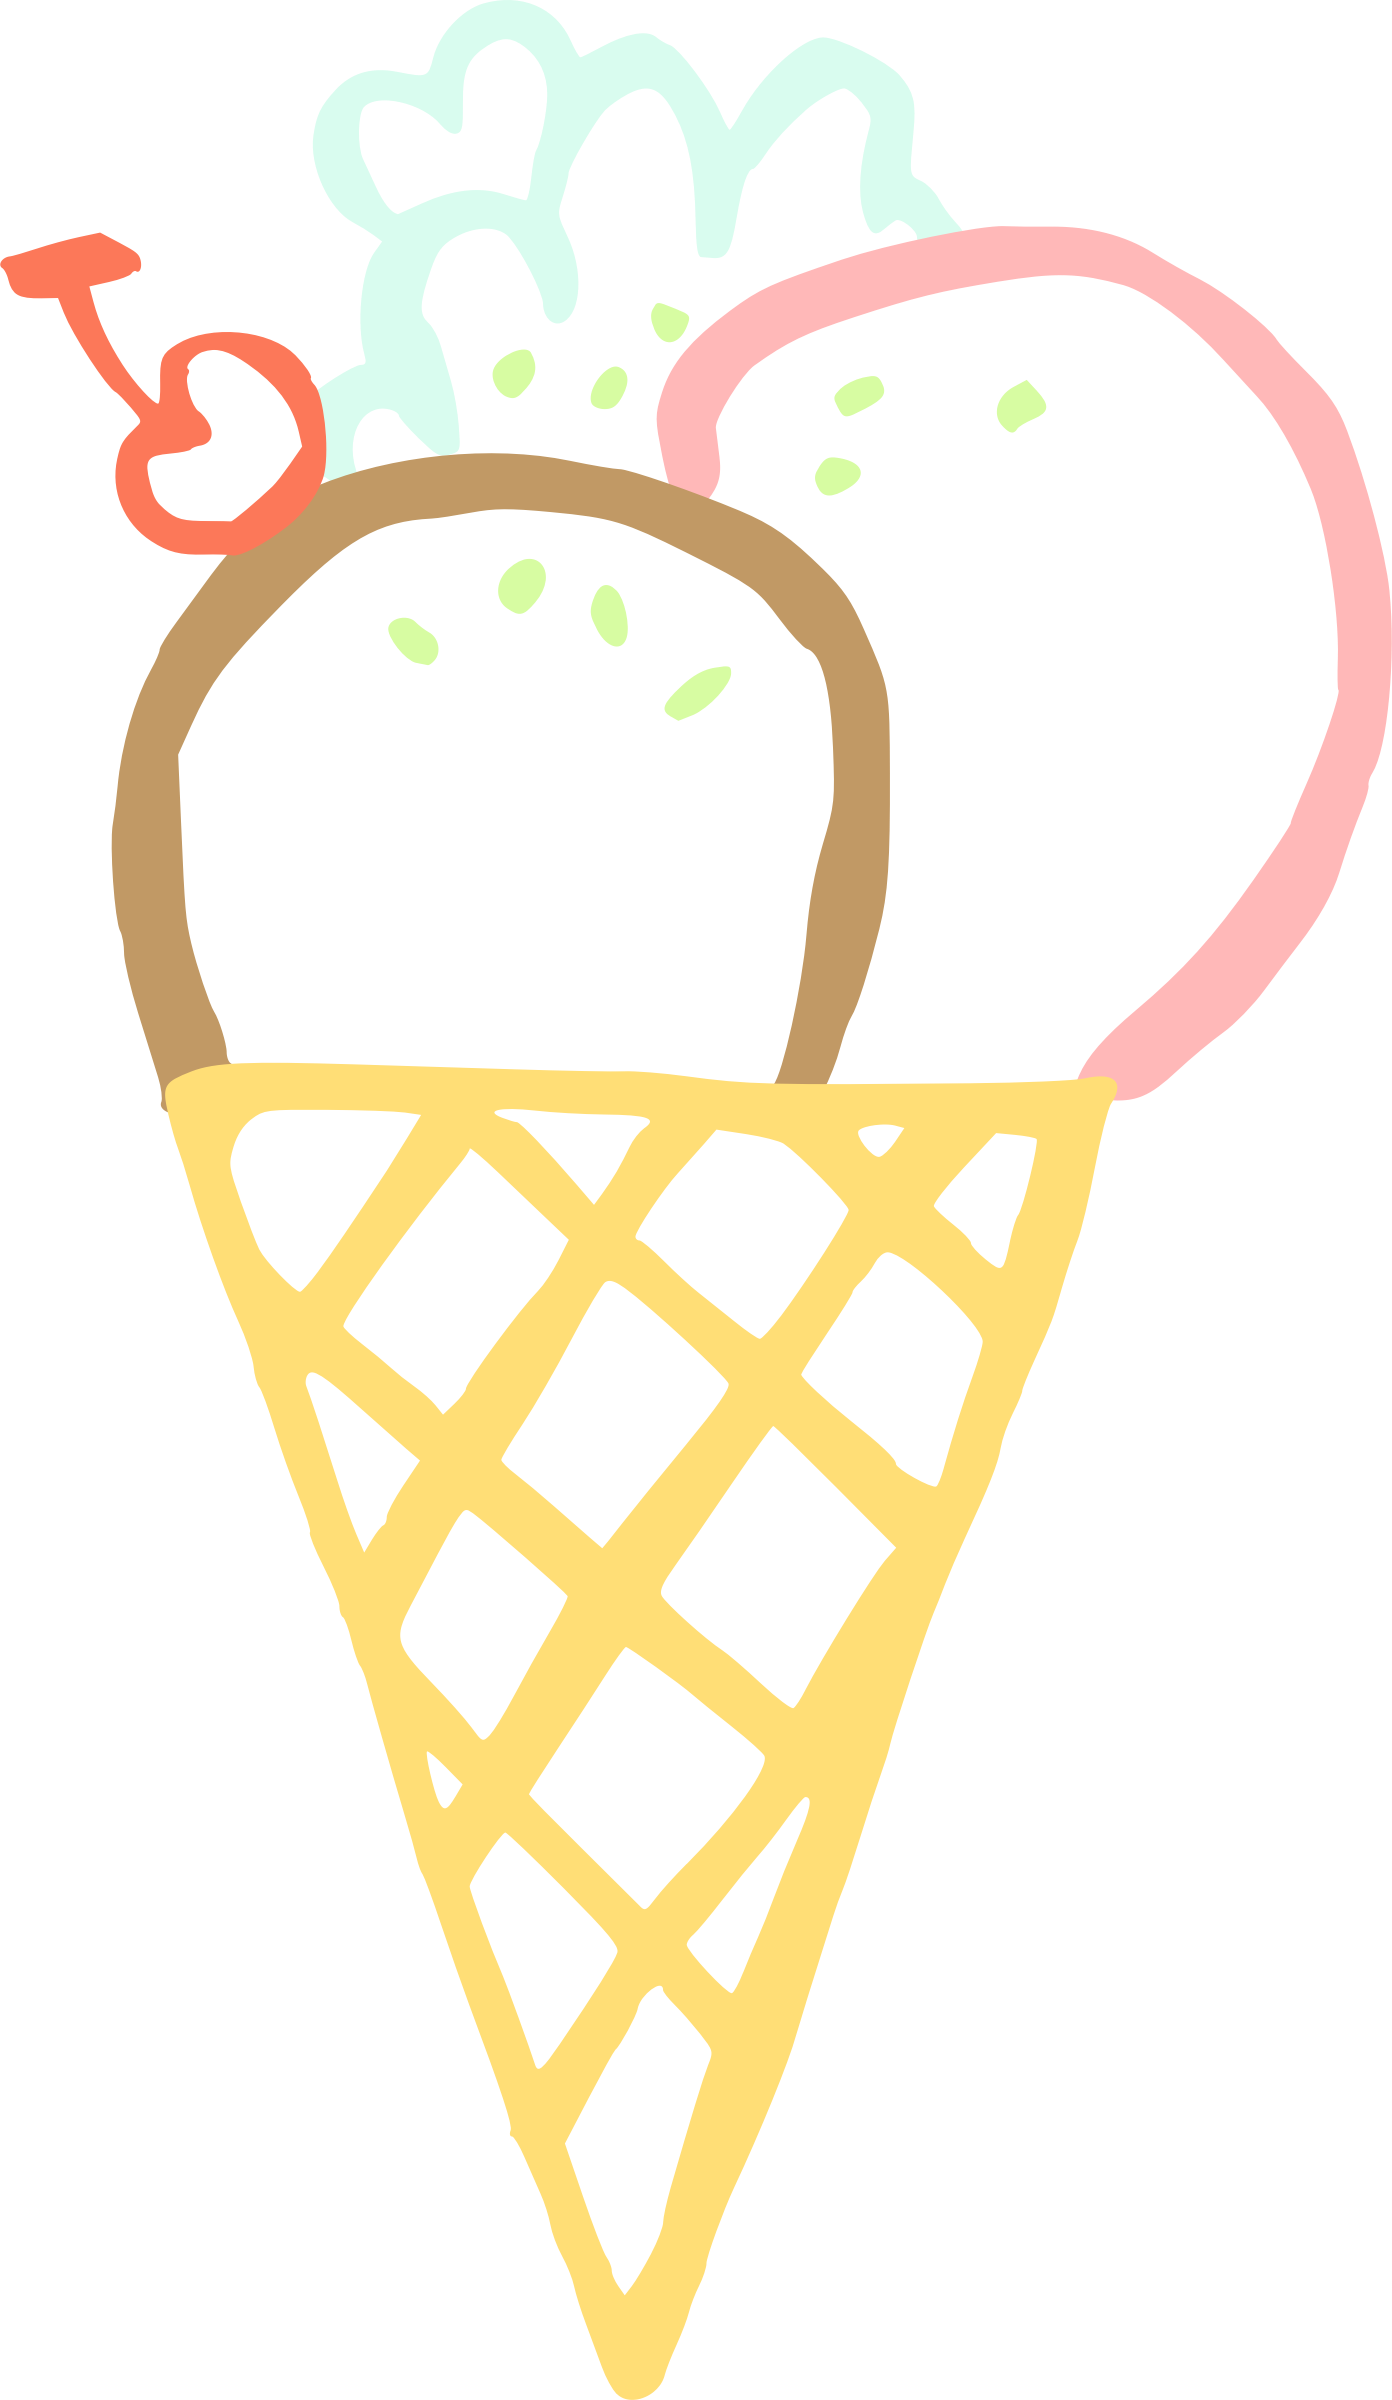 ice cream cone linda kim 01 by rejon